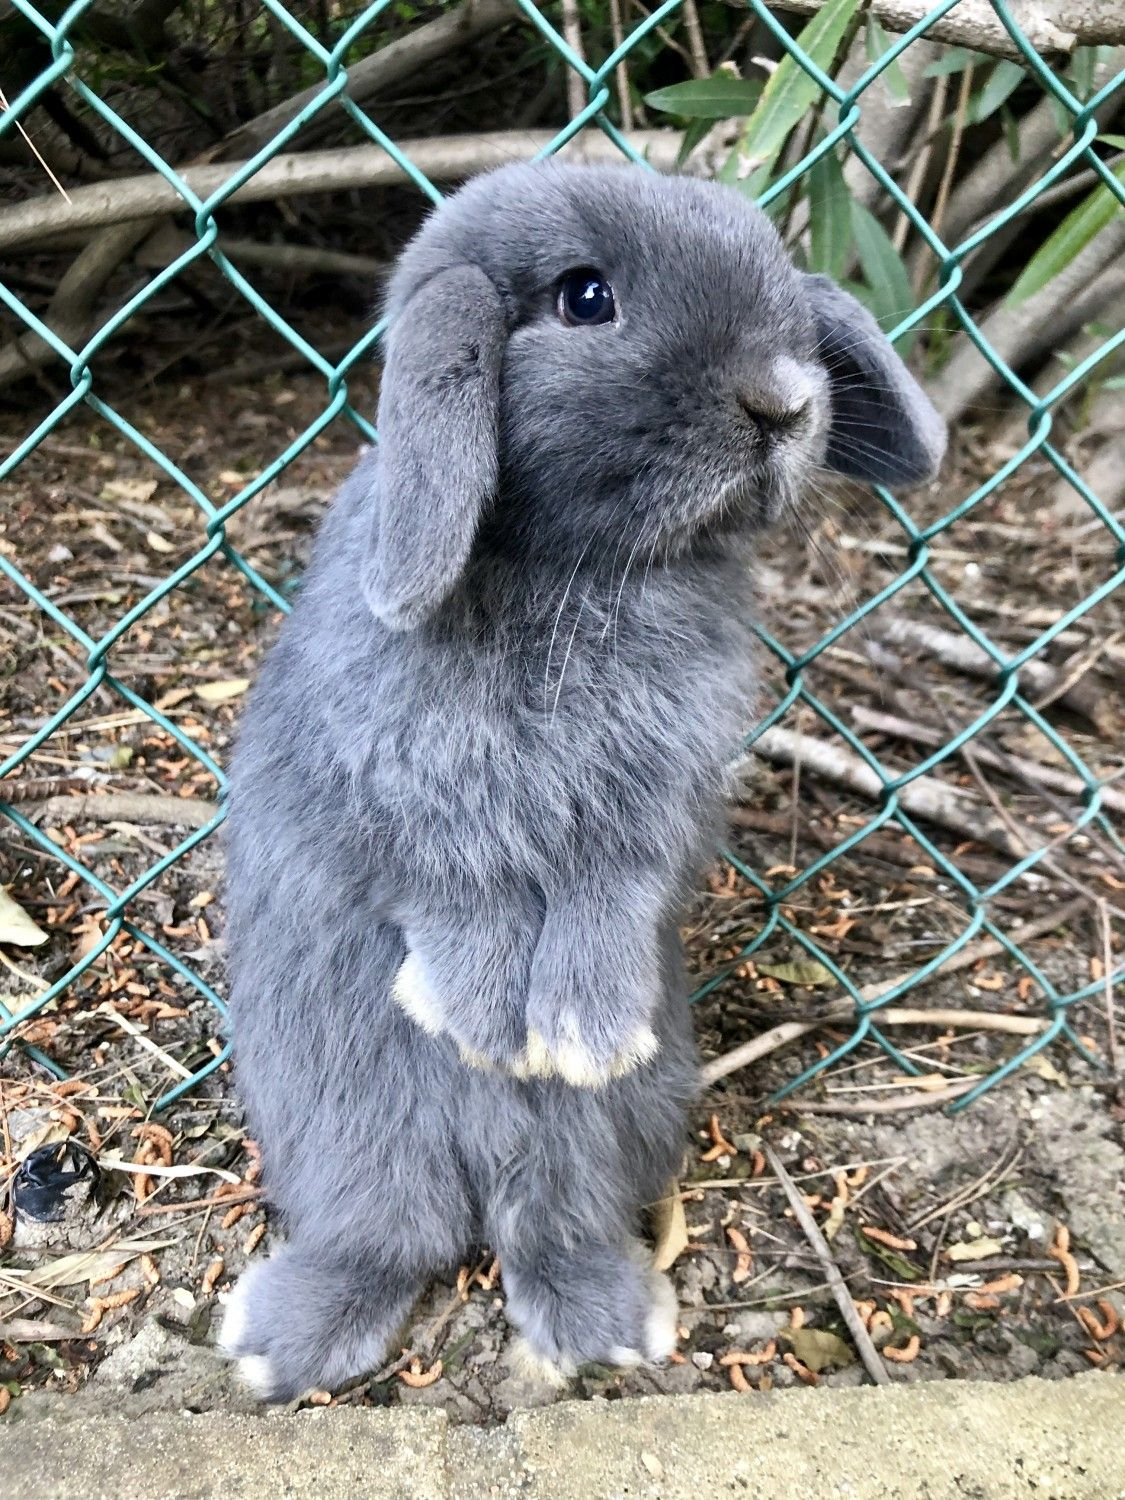 Grey Bunnies For Sale : bunnies, Holland, Rabbits, Anaheim, Hills,, Bunnies, Sale,